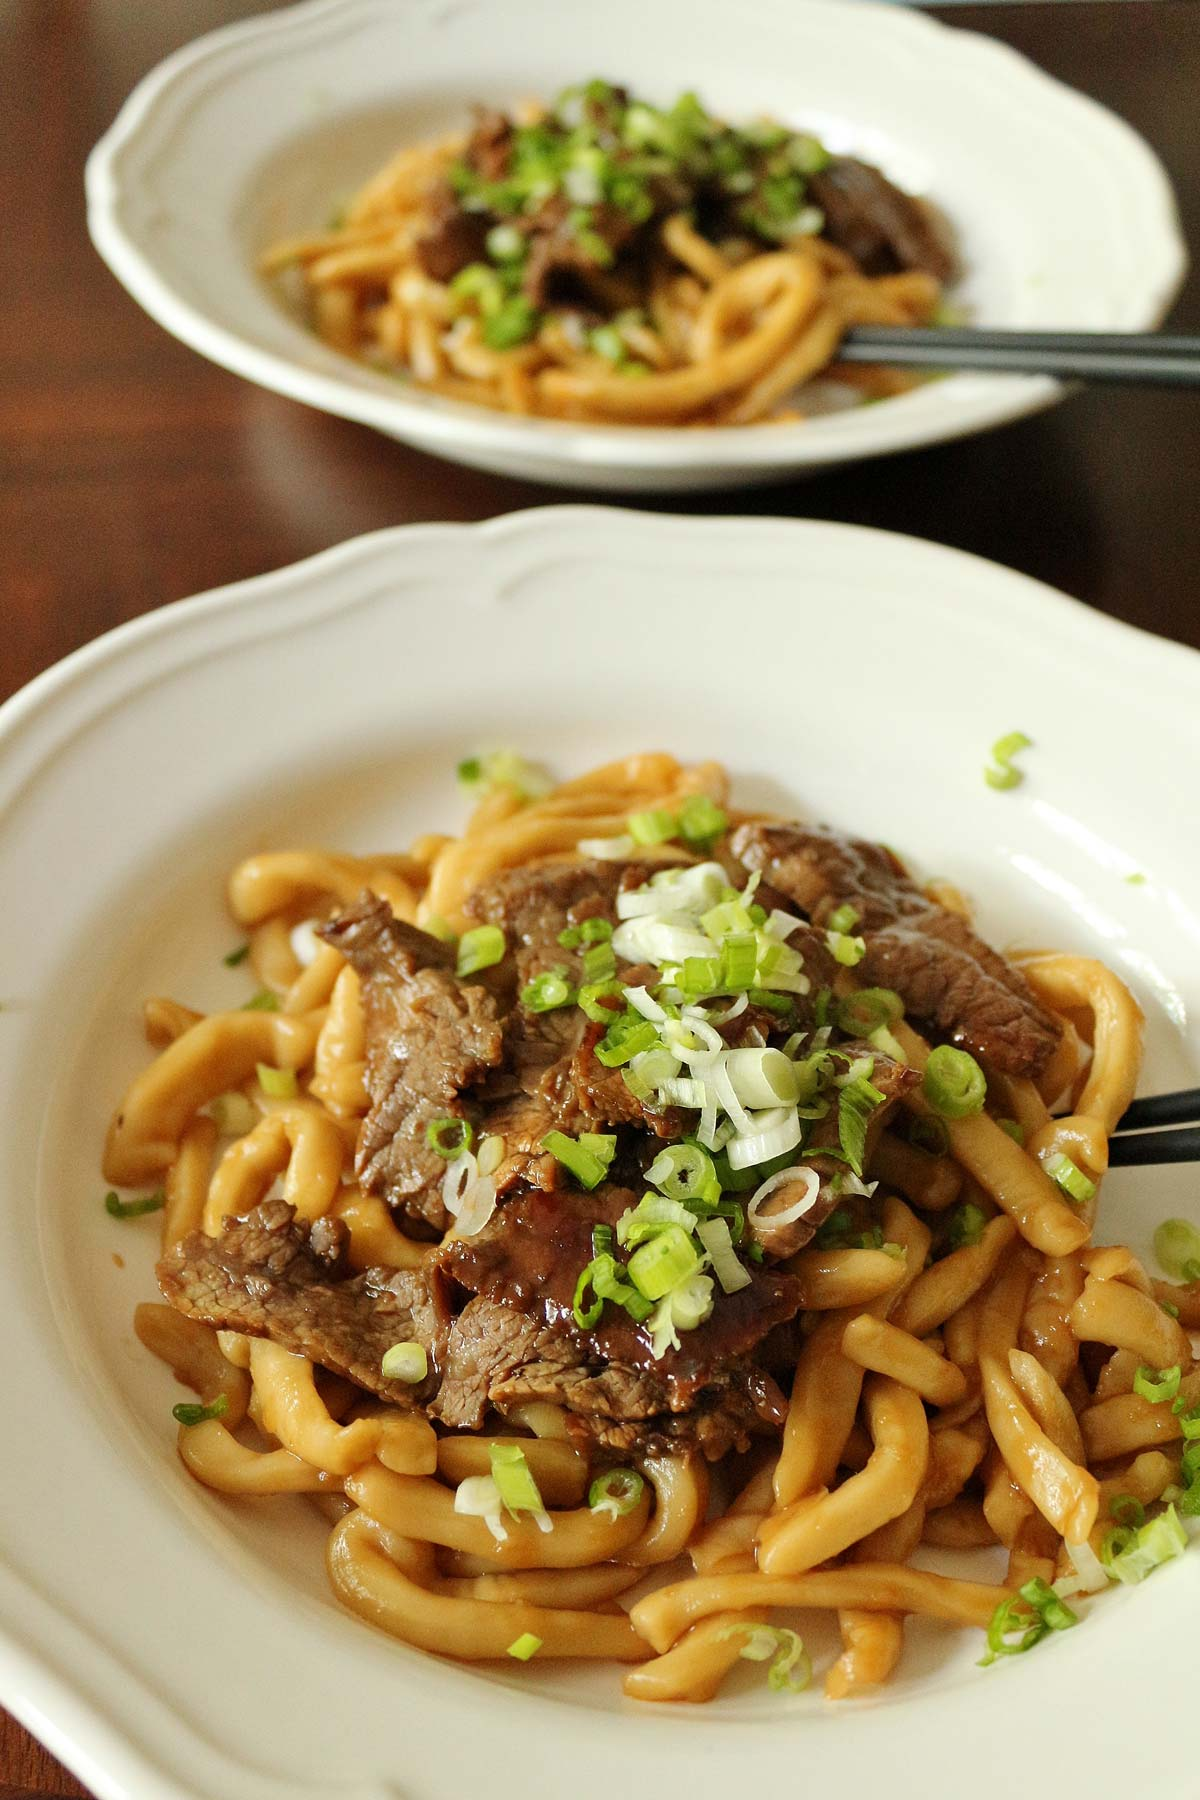 Two white plates with stir-fried udon noodles topped with sliced teriyaki beef and scallions.